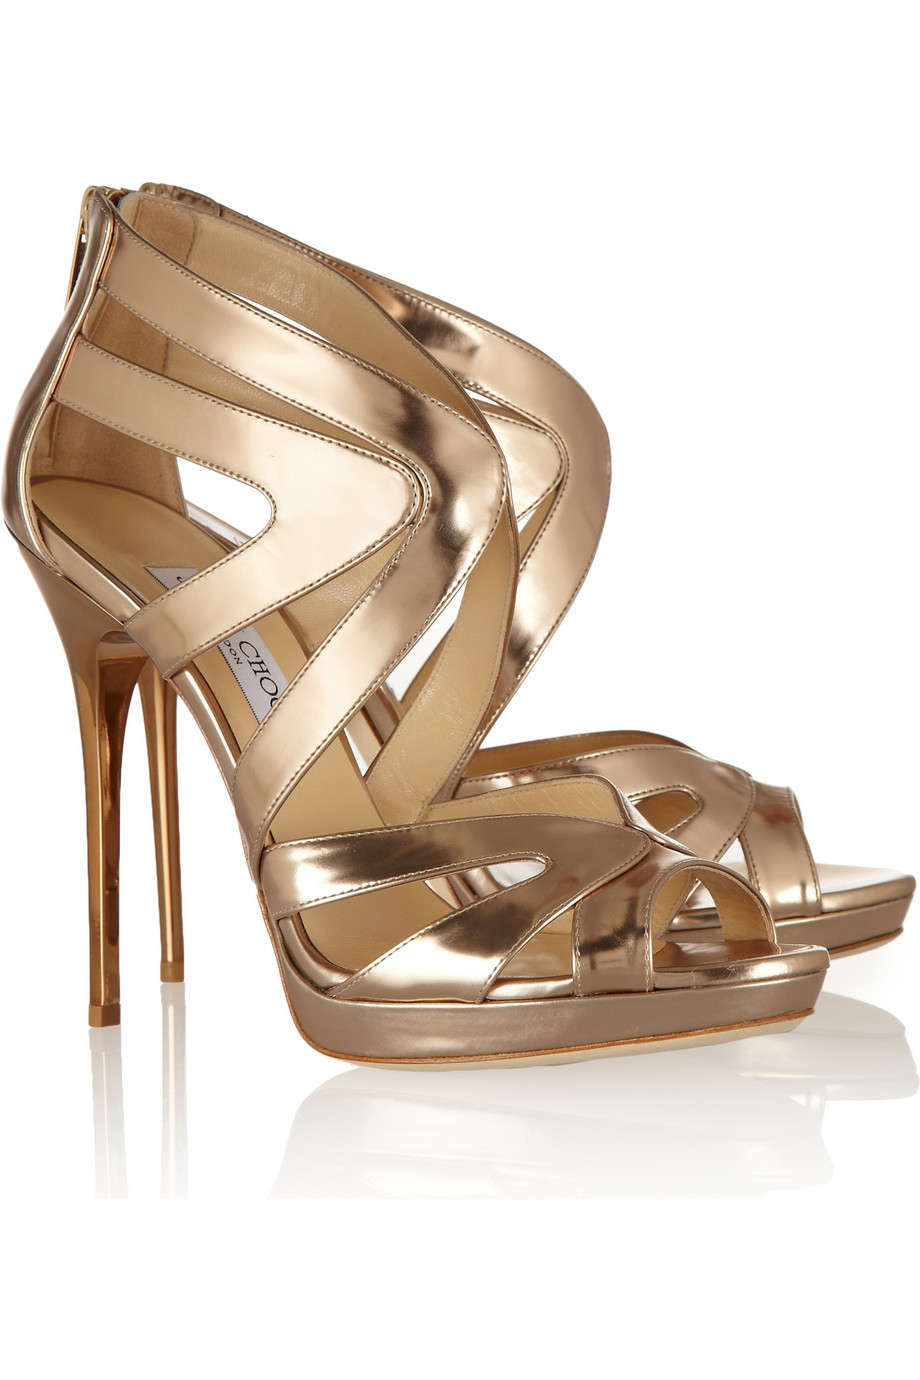 Jimmy Choo Collar Mirrored-Leather Sandals In Gold